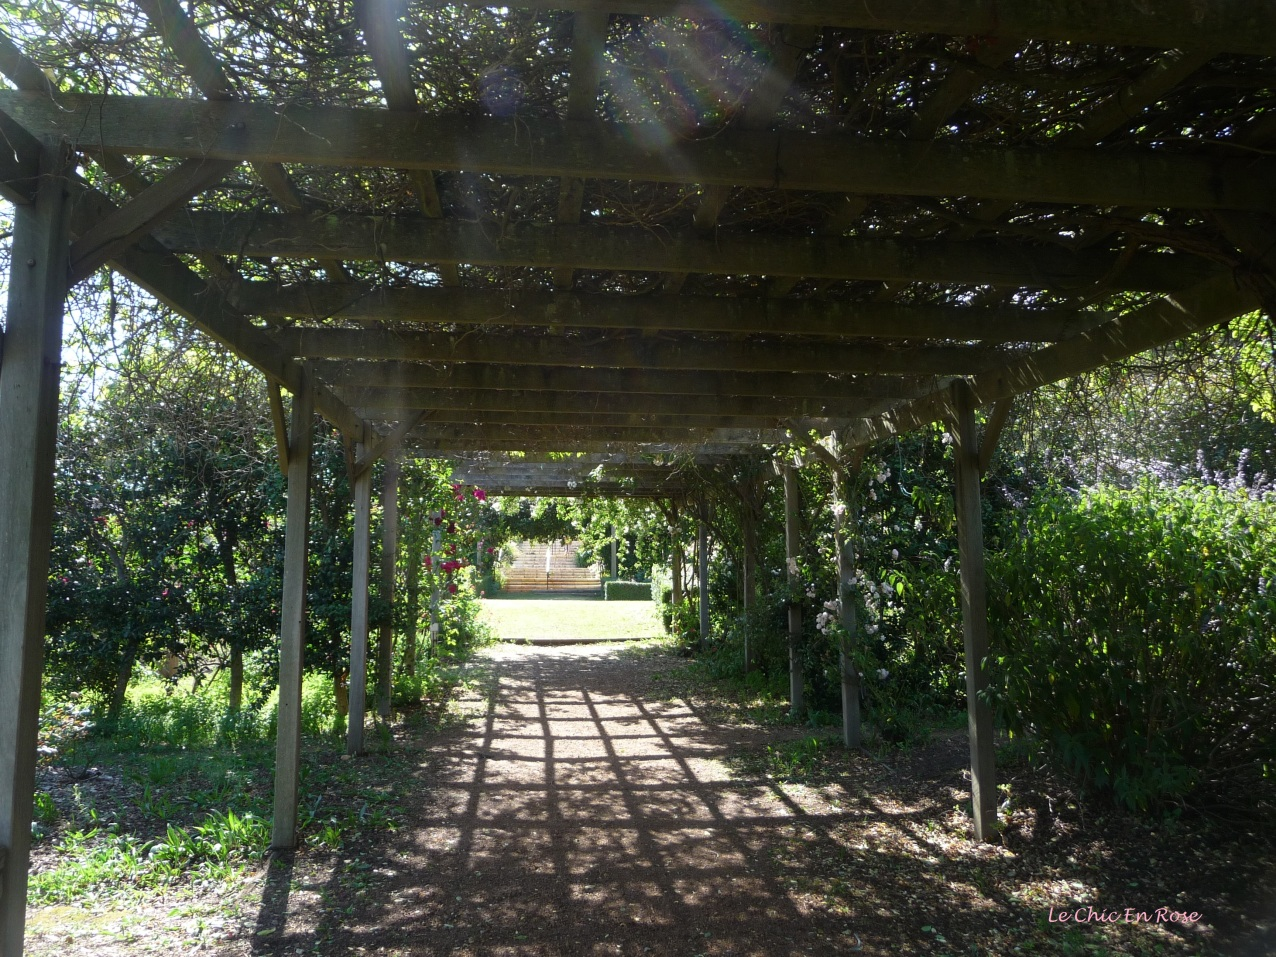 The pergola affords excellent shade from the sun